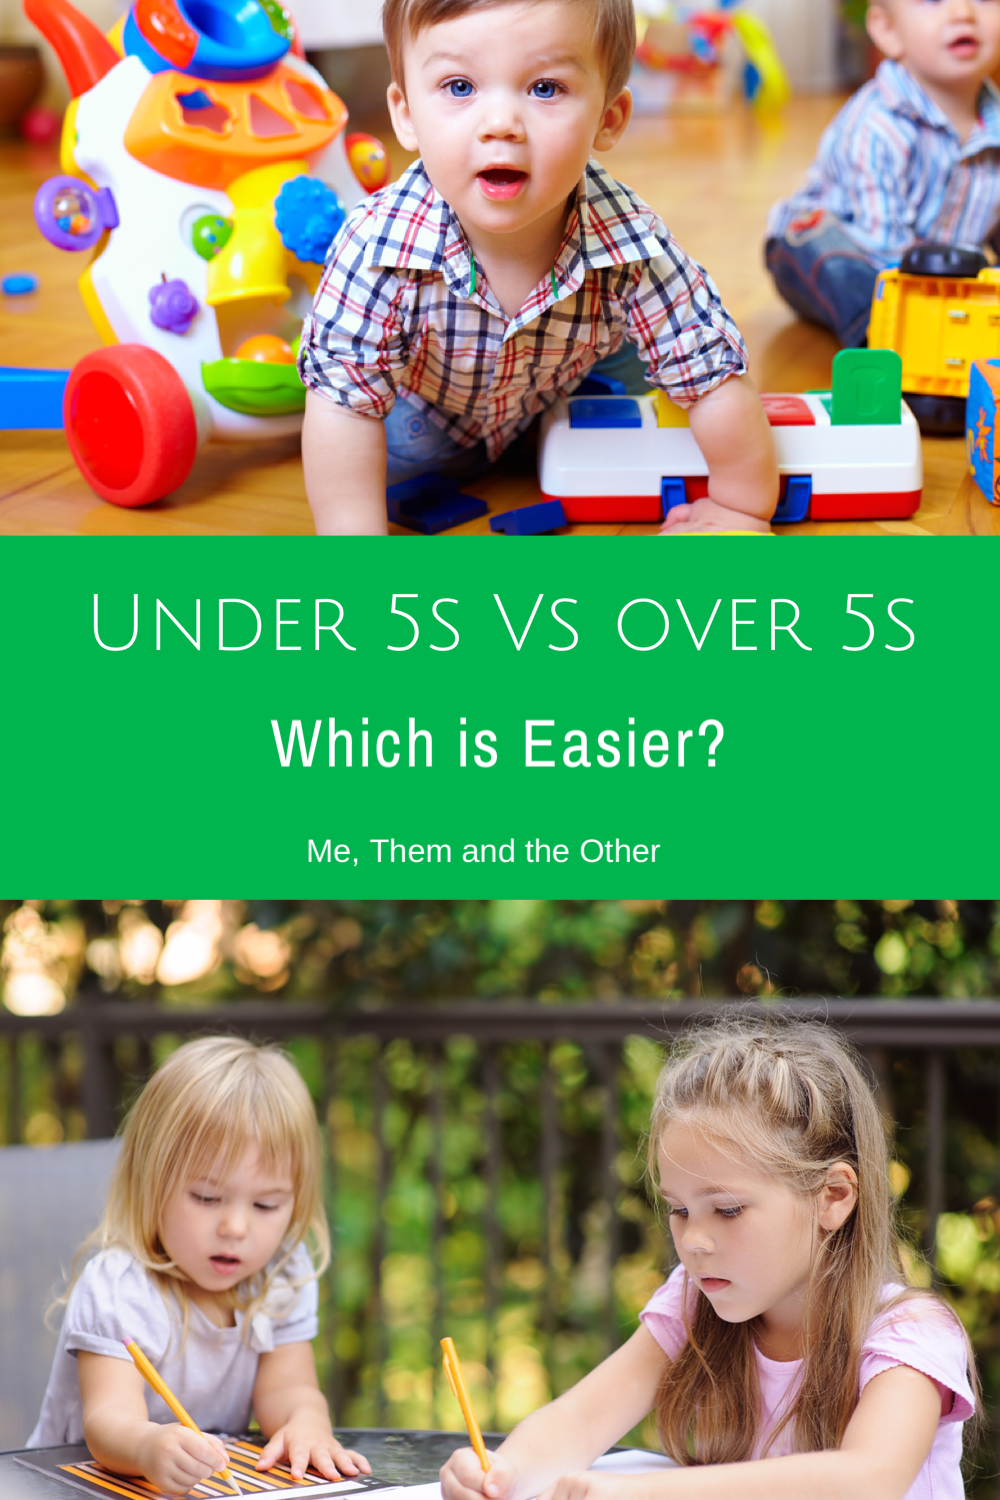 Parenting stages: which is easier Under 5s Vs over 5s